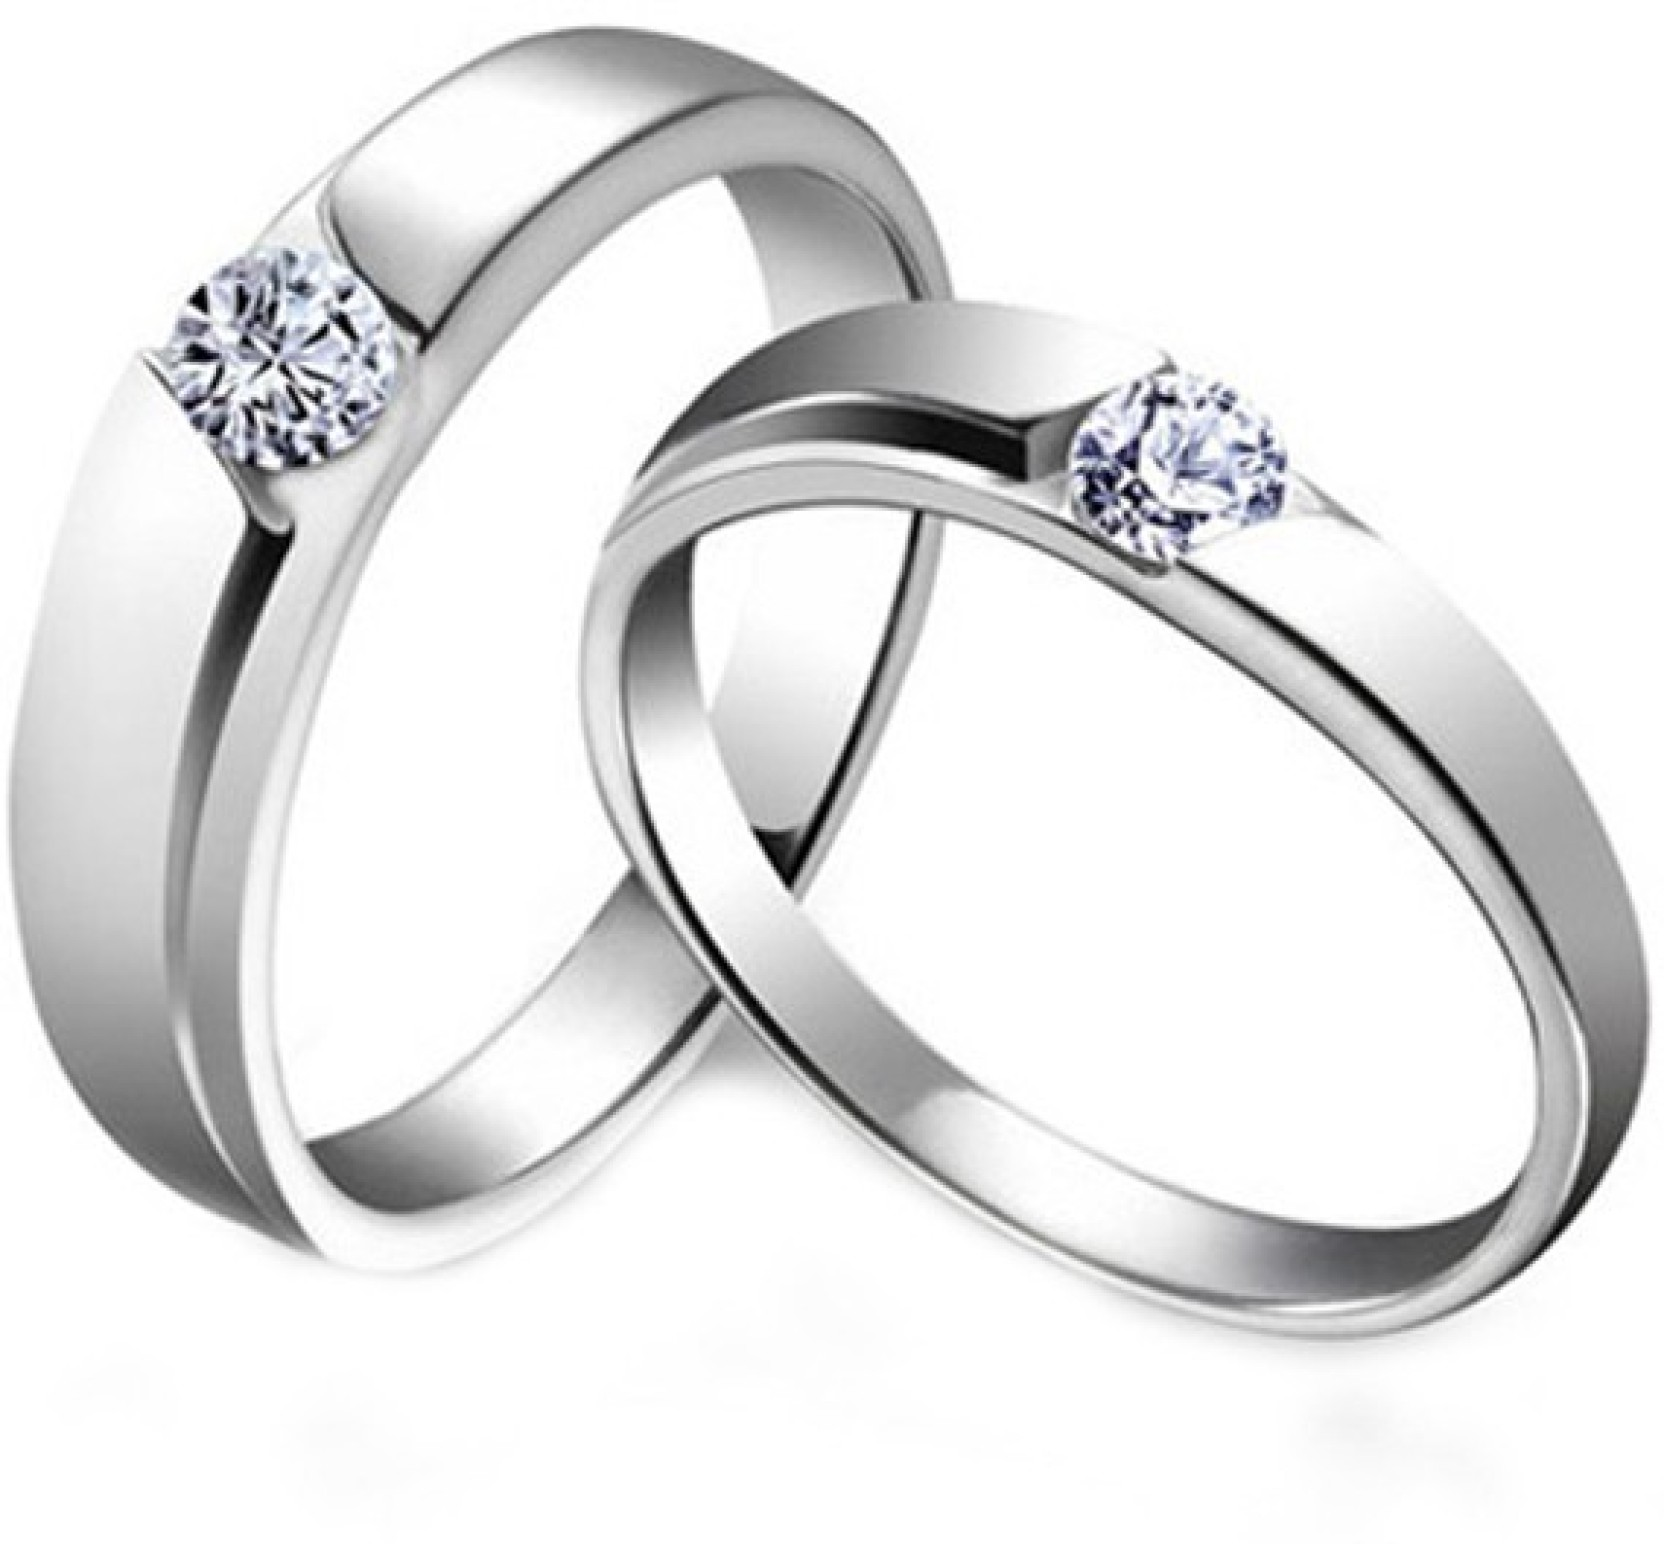 Sterling Silver Cz Wedding Rings 001 - Sterling Silver Cz Wedding Rings